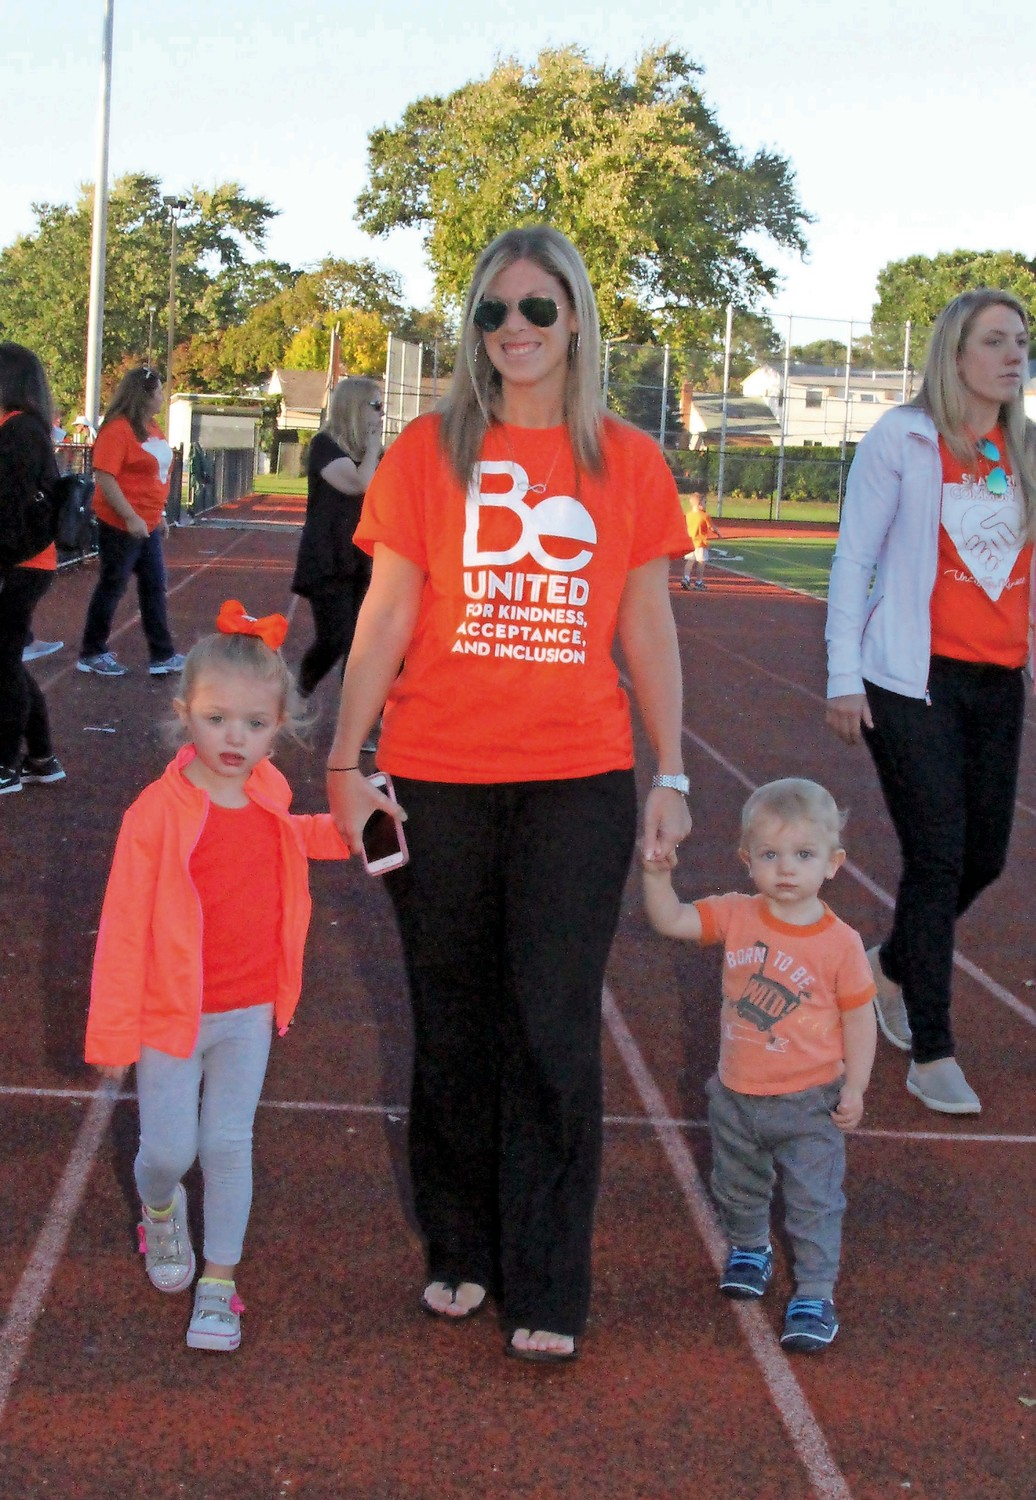 Lindsay Ardito and her children Jenna, 4, and Jace, 1, participated in the walk at Seaford High School.